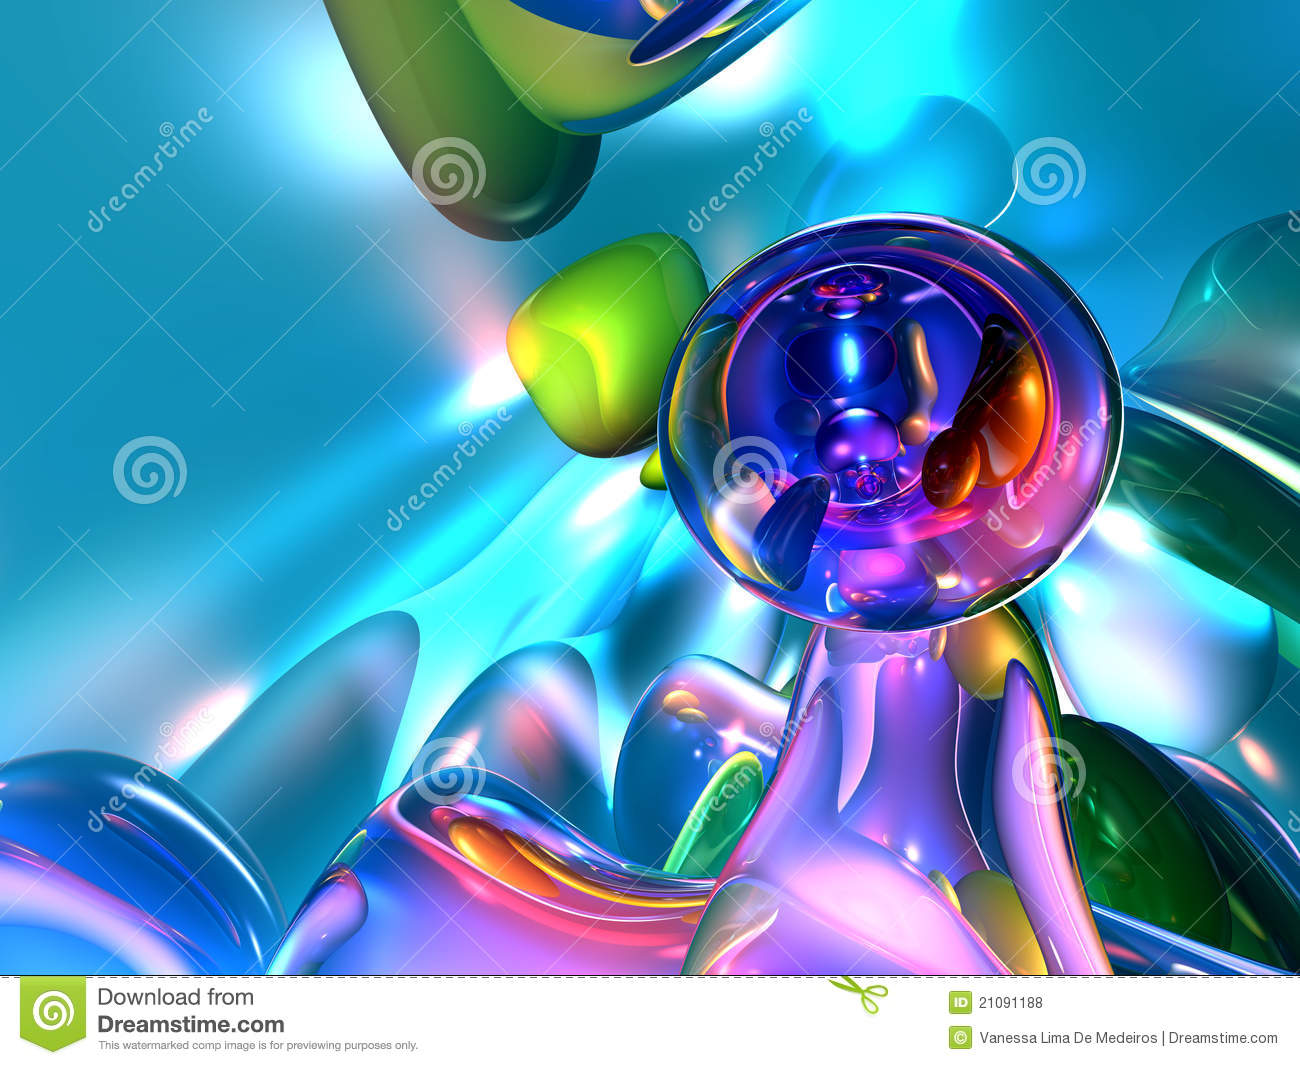 Pics photos 3d colorful abstract background design - Abstract Background Colorful Glassy Render Wallpaper